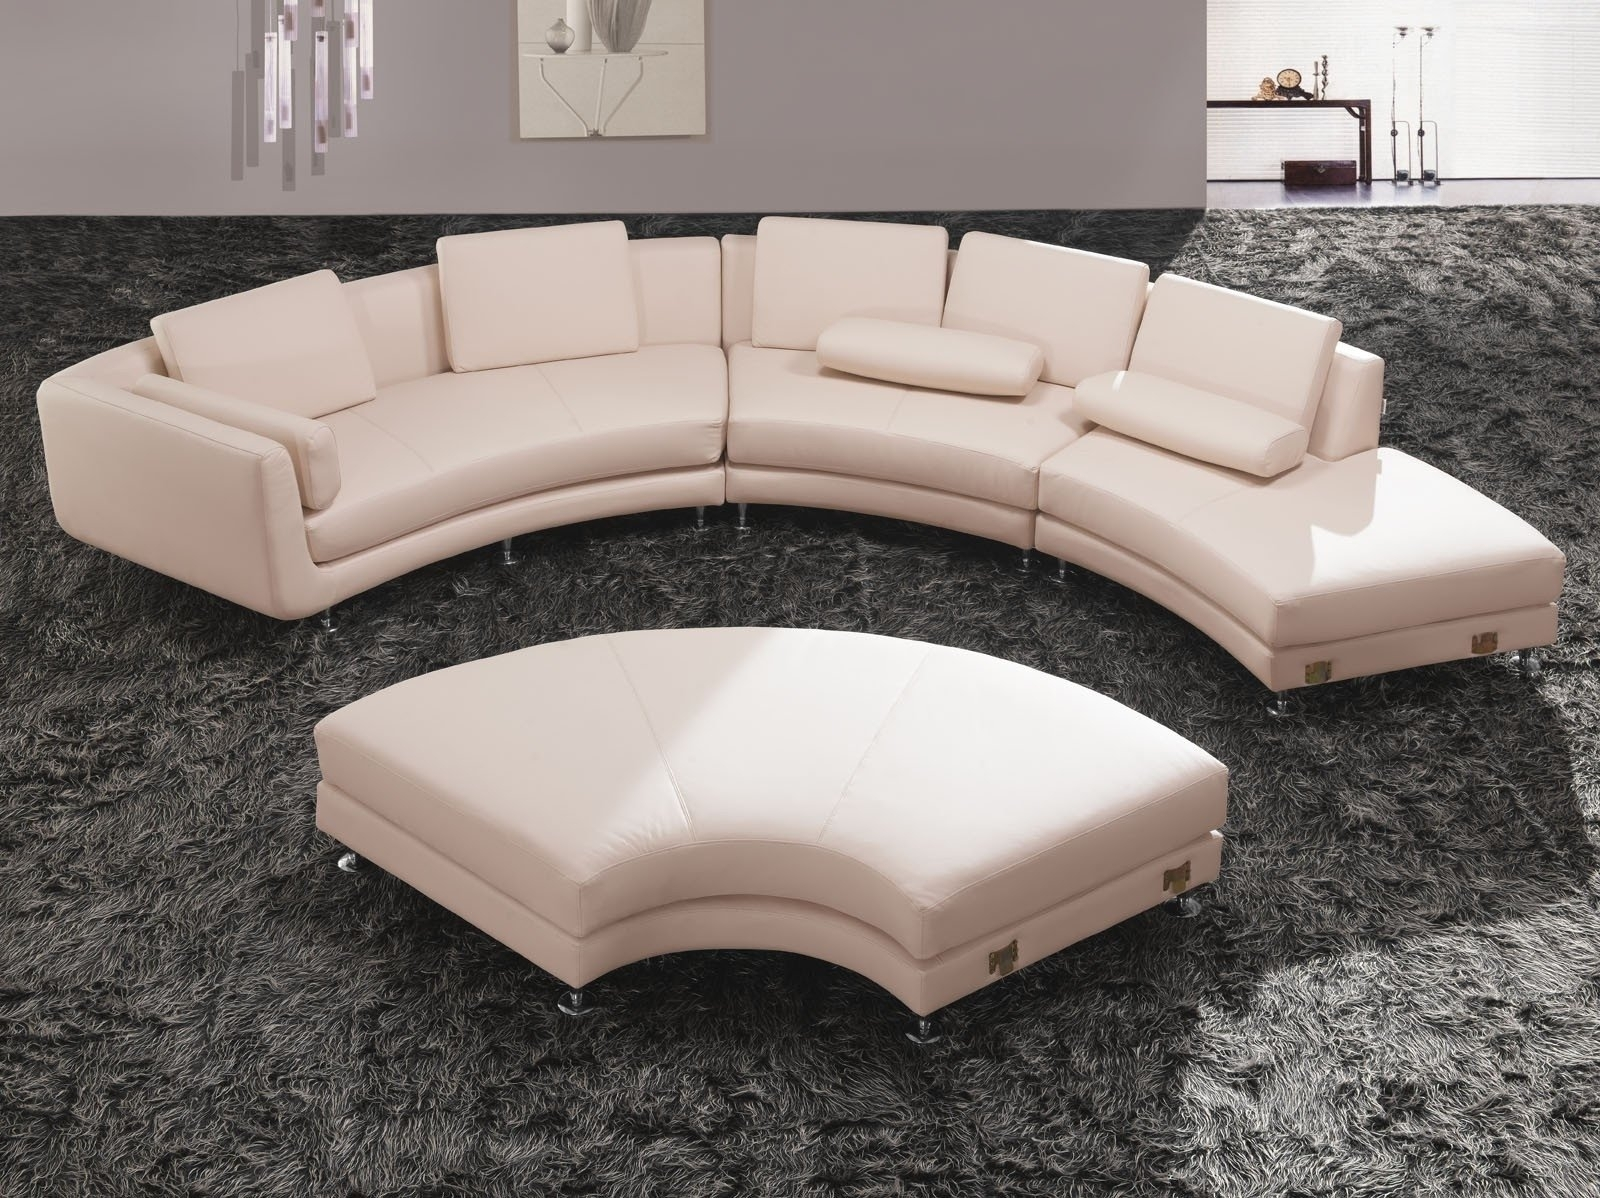 Huge Gift Round Sectional Sofas Furniture Modern Reversible Sofa Within Rounded Sofas (Image 4 of 10)